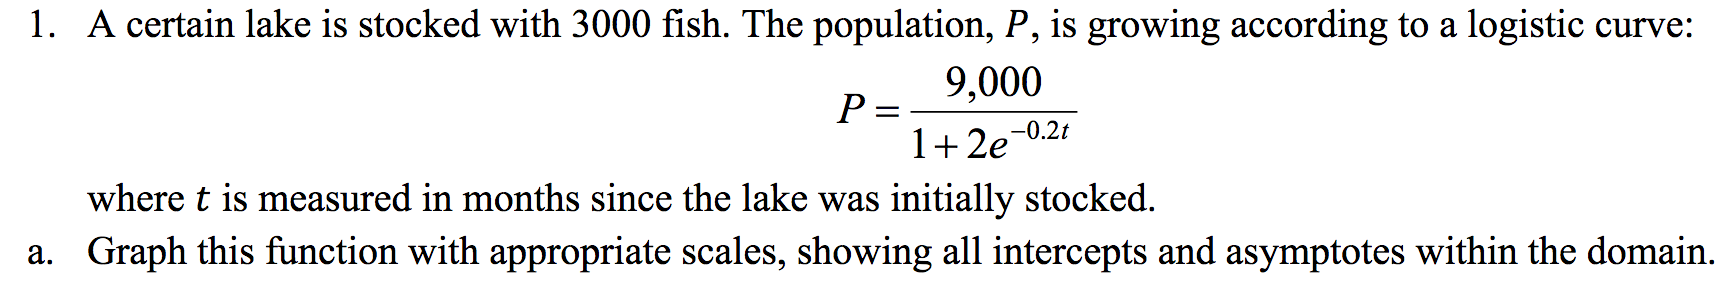 1. A certain lake is stocked with 3000 fish. The population, P, is growing according to a logistic curve: 9,000 P = 1 2e -0.2t where t is measured in months since the lake was initially stocked. a. Graph this function with appropriate scales, showing all intercepts and asymptotes within the domain.